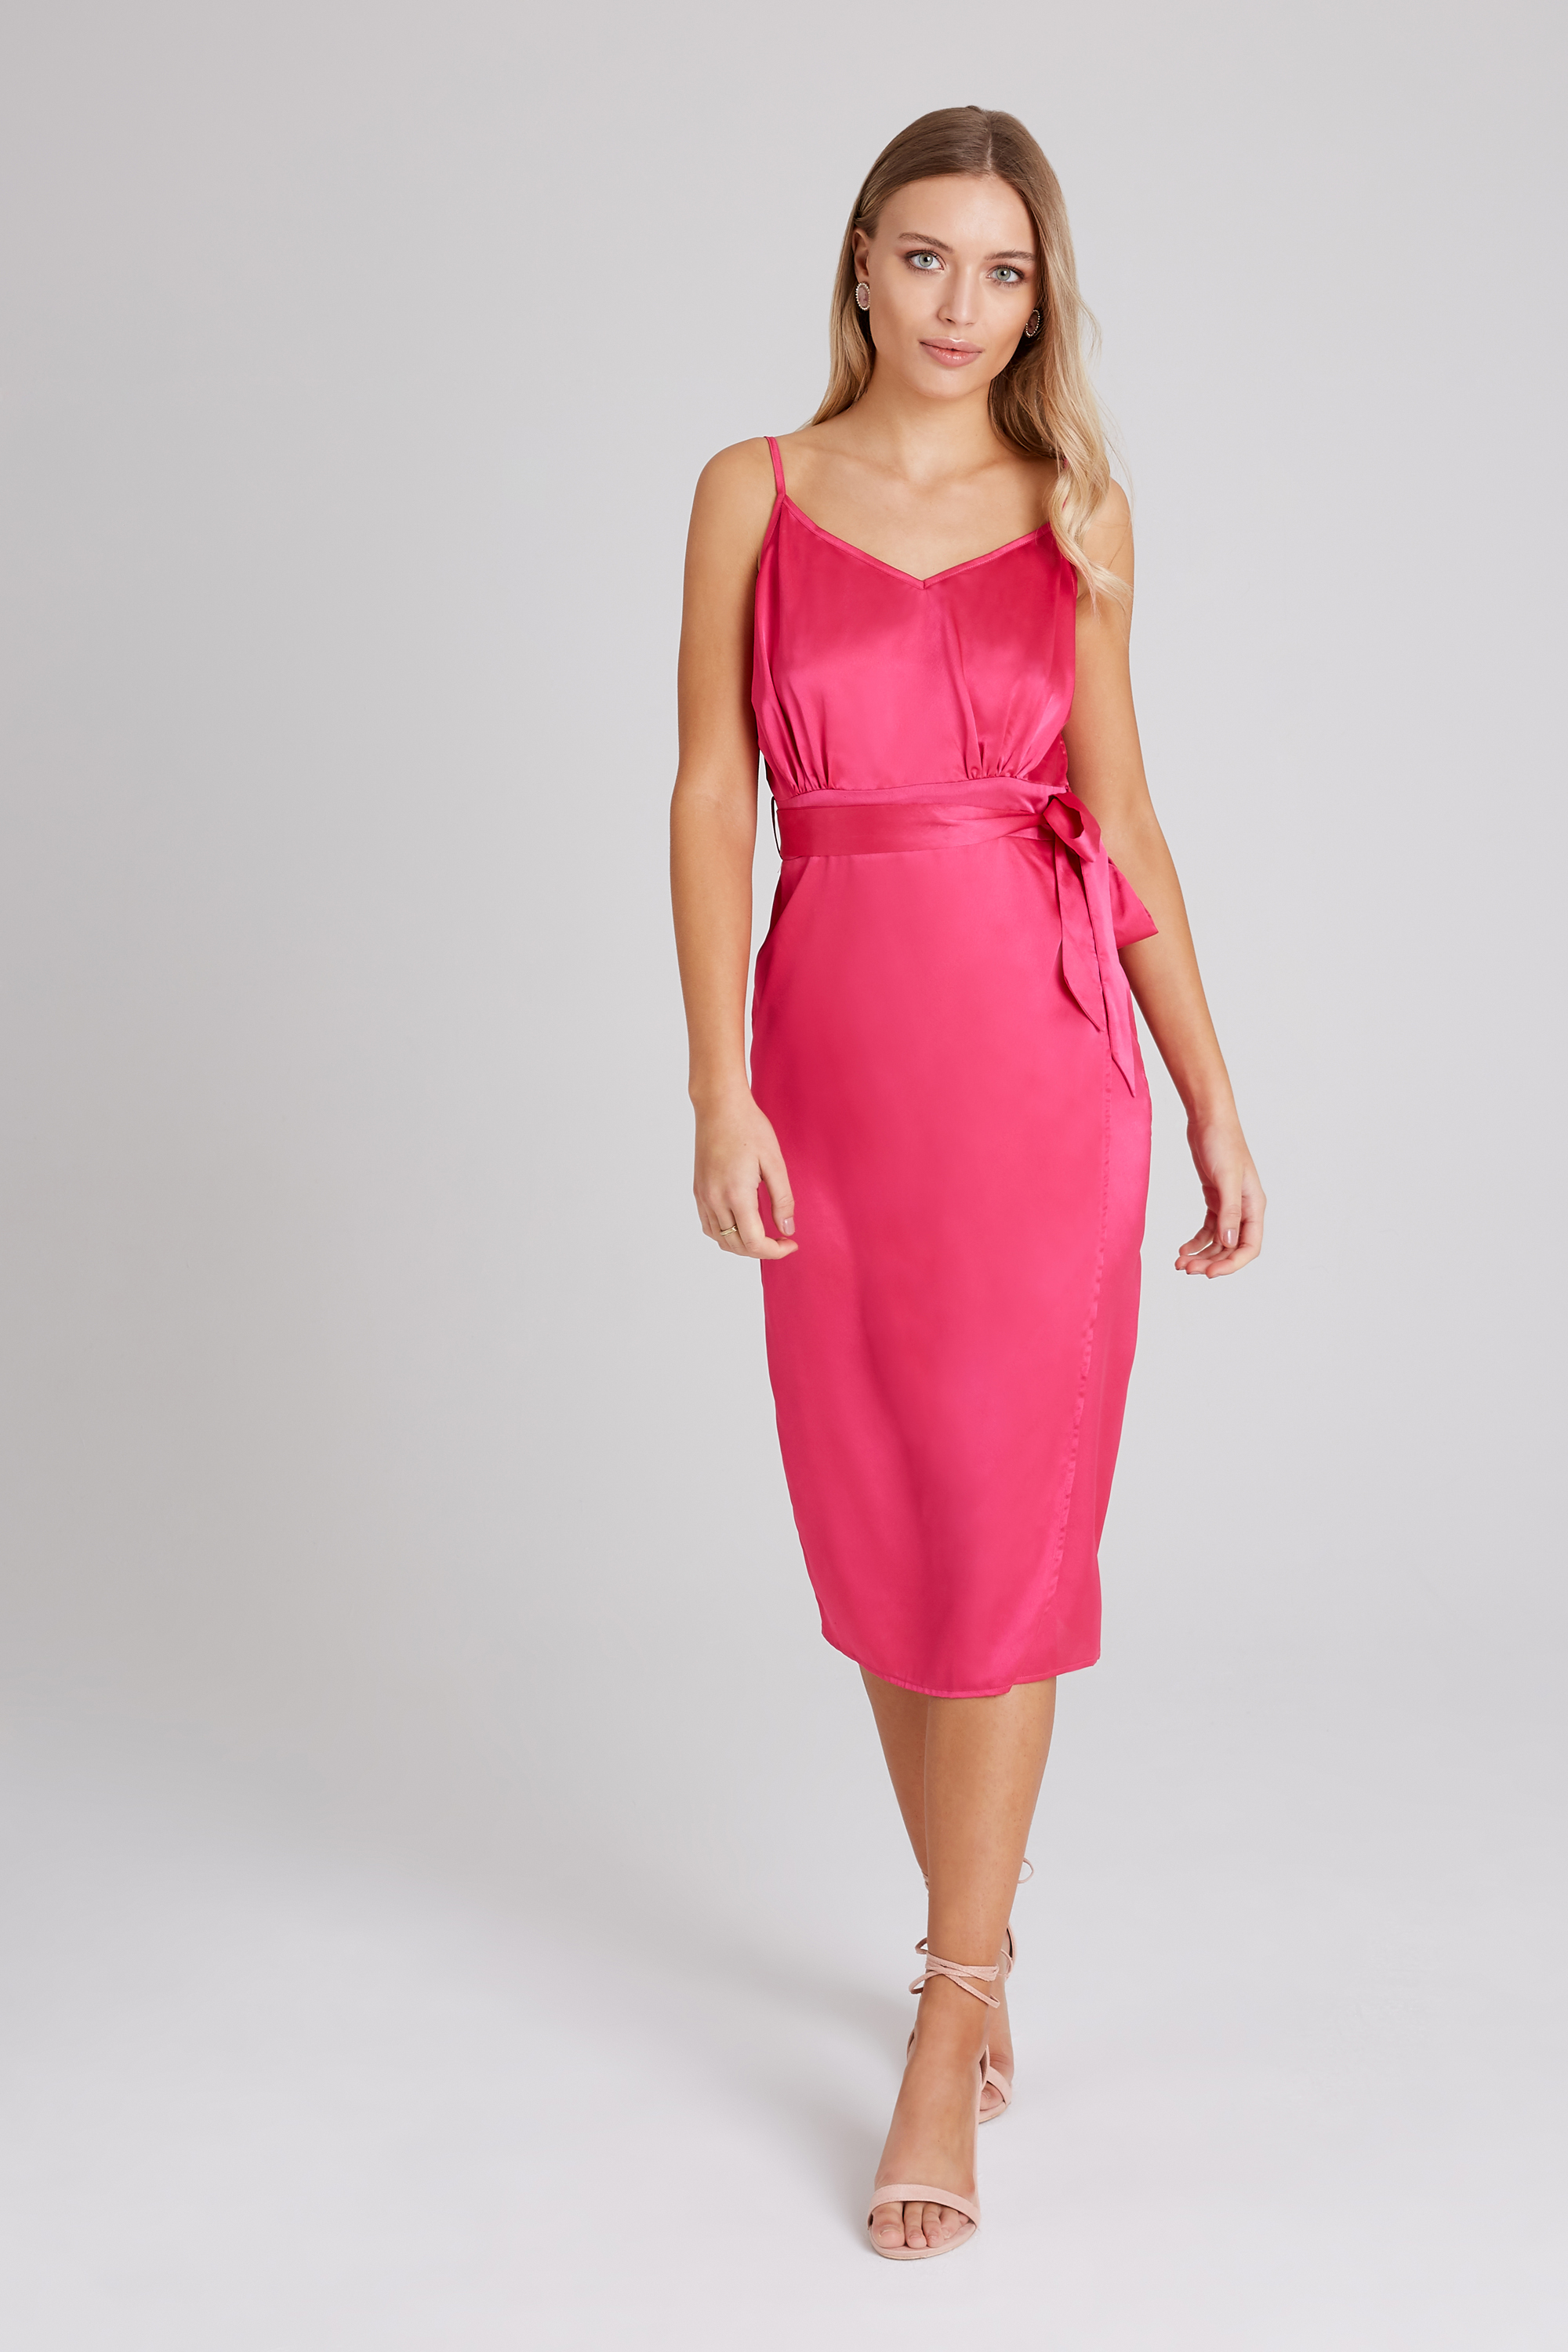 Girls on Film Nava Pink Satin Slip Dress